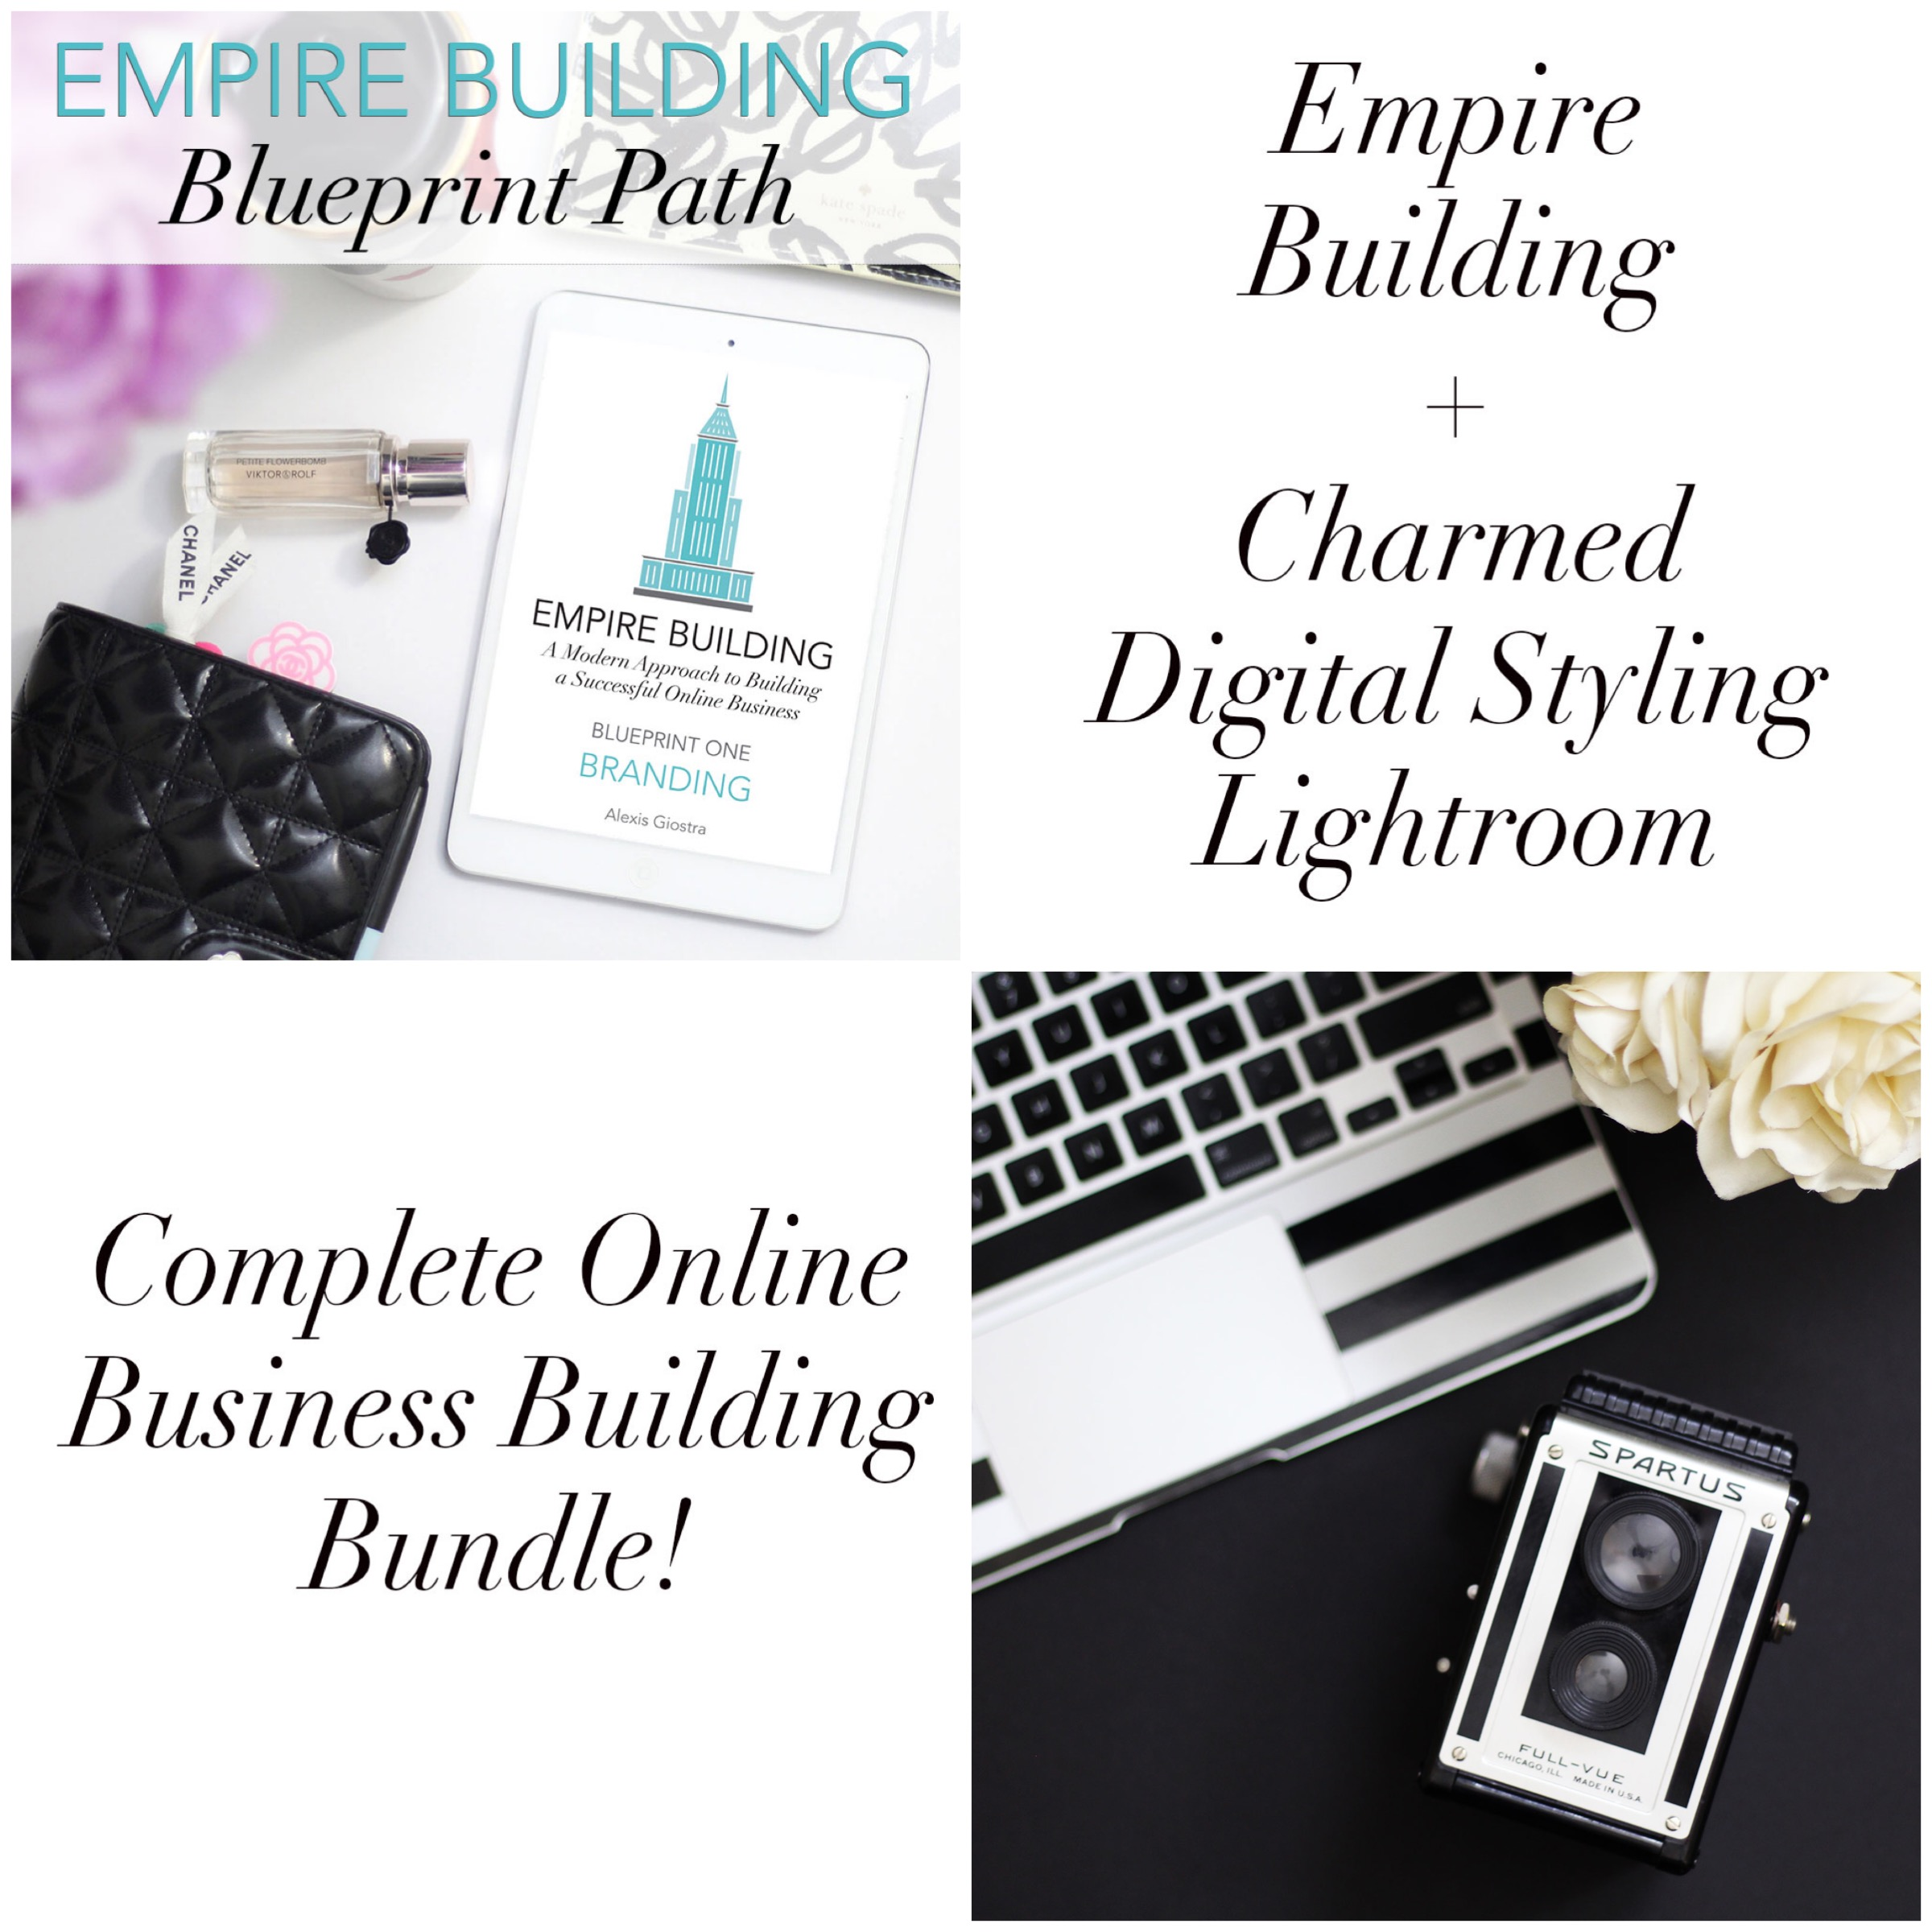 Empire building charmed digital styling lightroom online business empire building charmed digital styling lightroom online business bundle malvernweather Choice Image